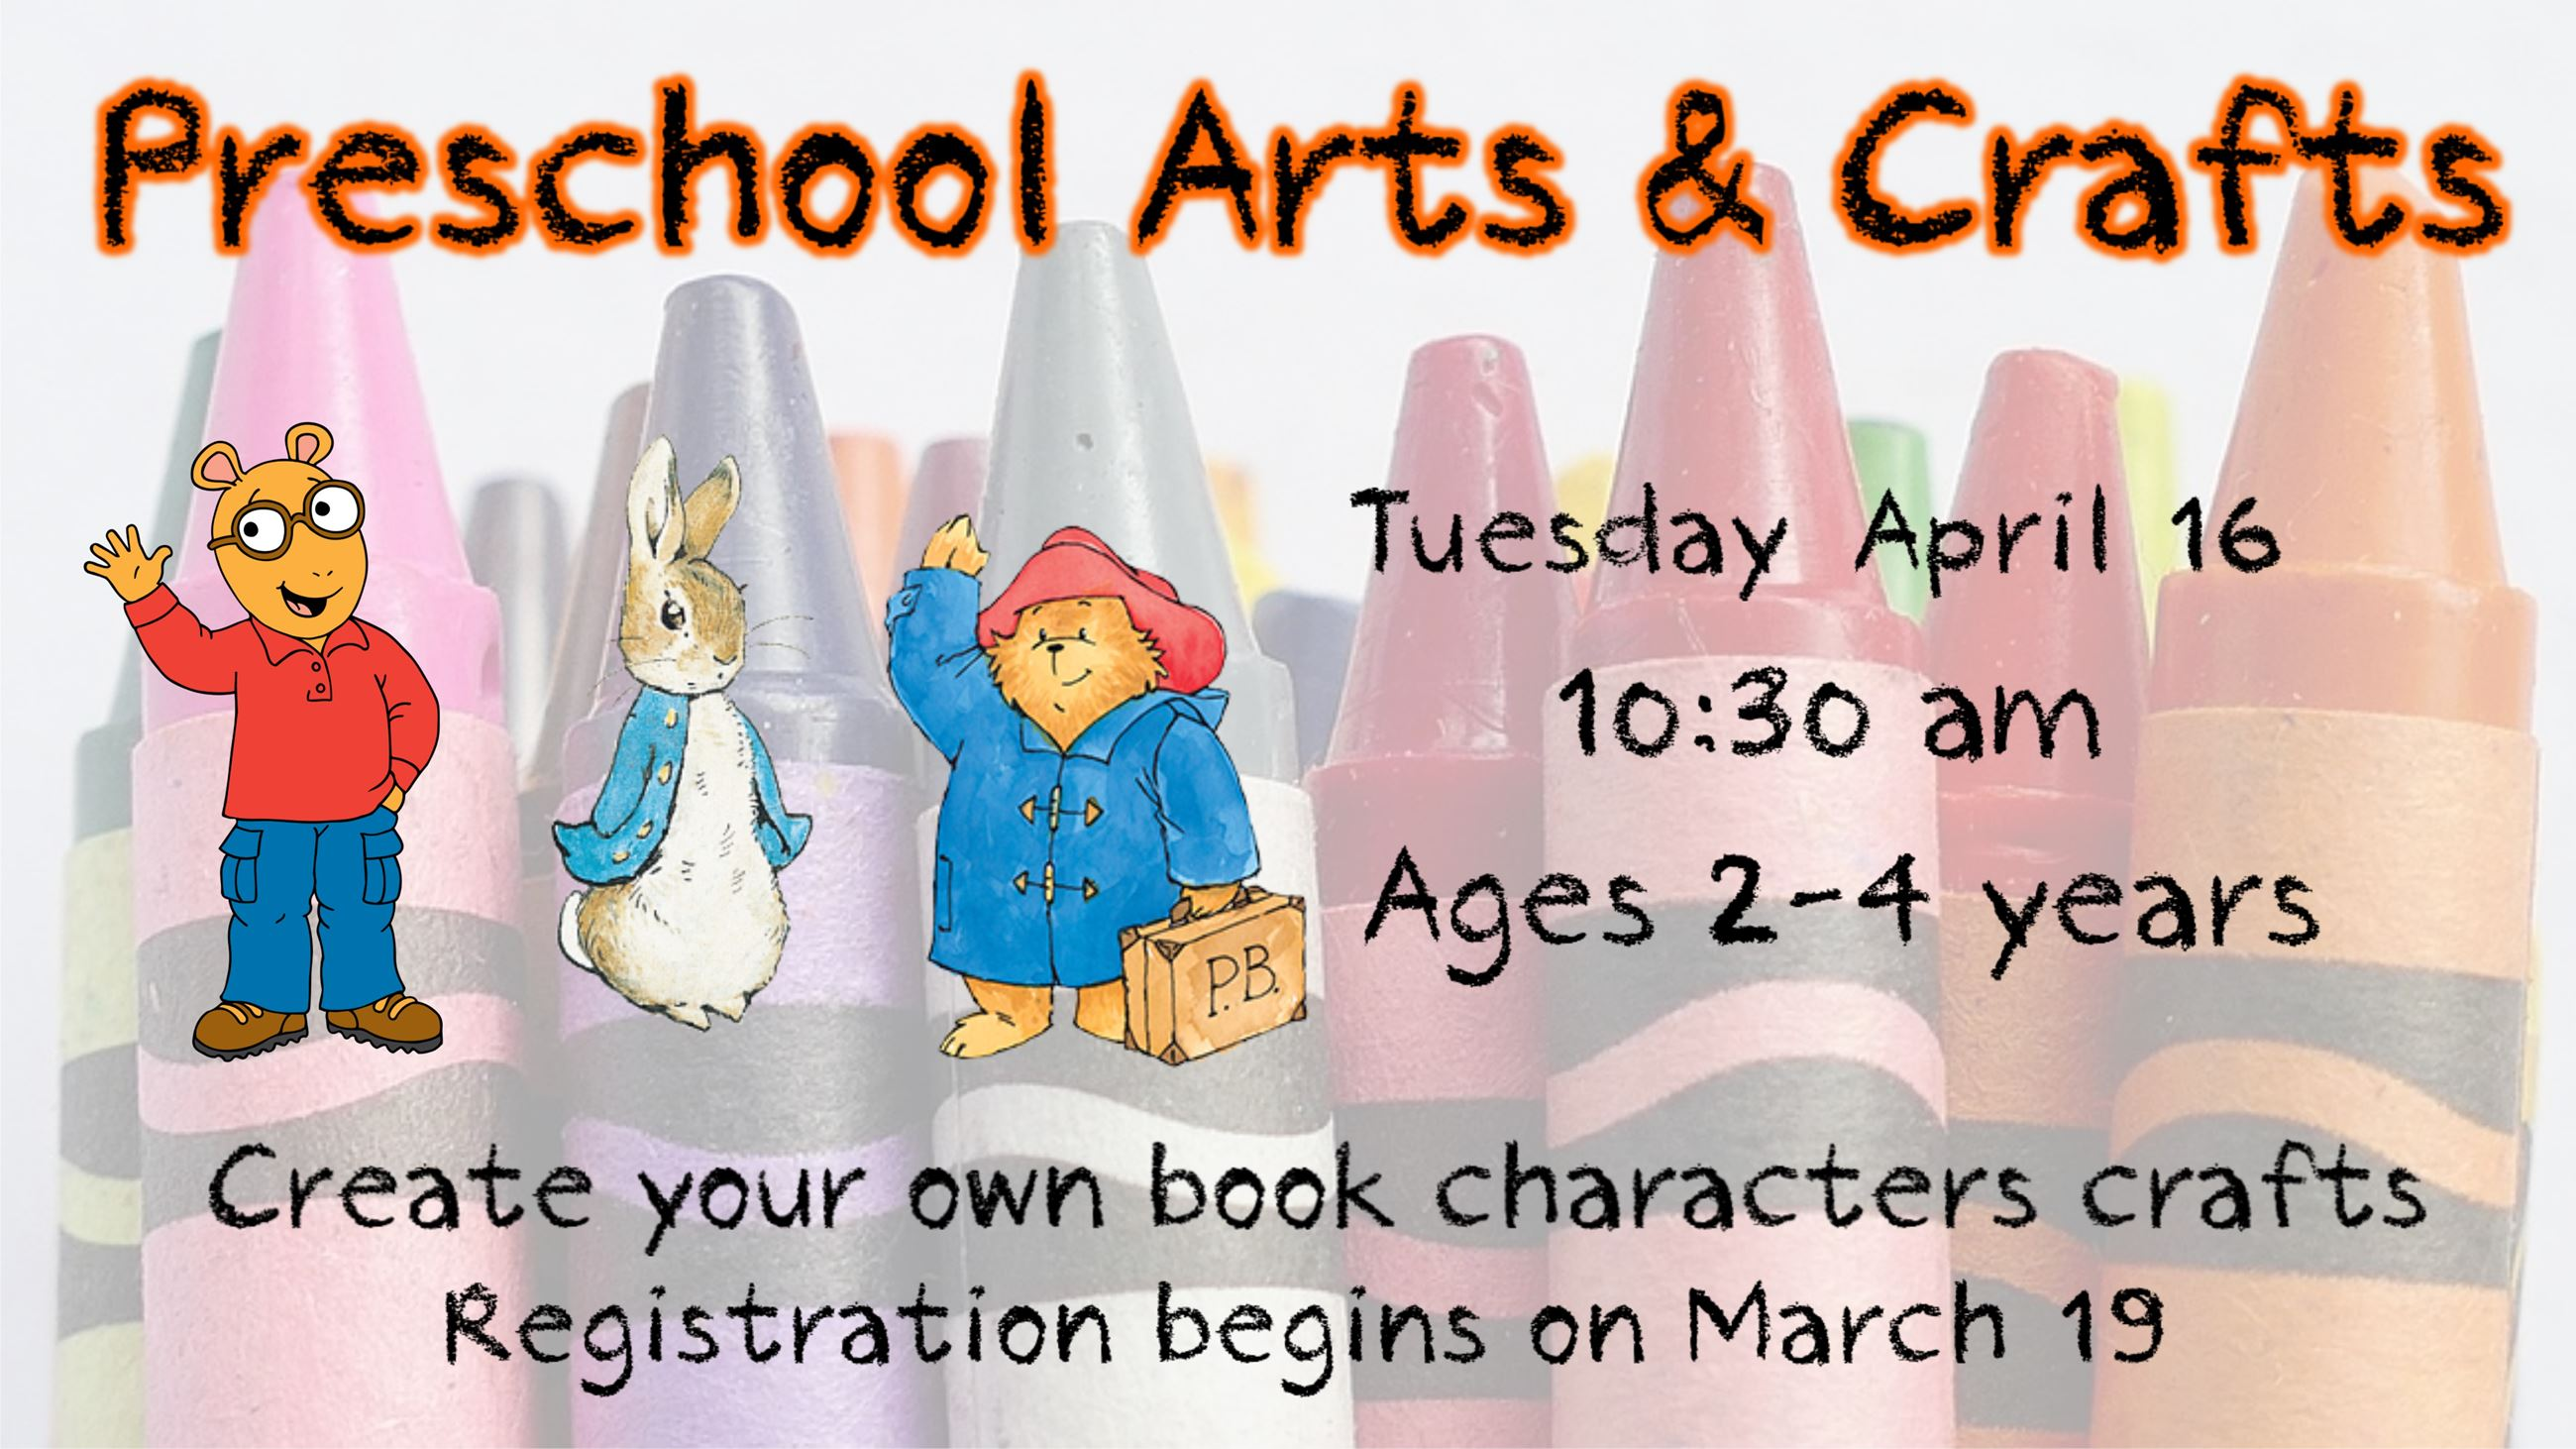 Presschool Arts and Crafts. April 16, 10:30 a.m. Ages 2 to 4. Registration required.